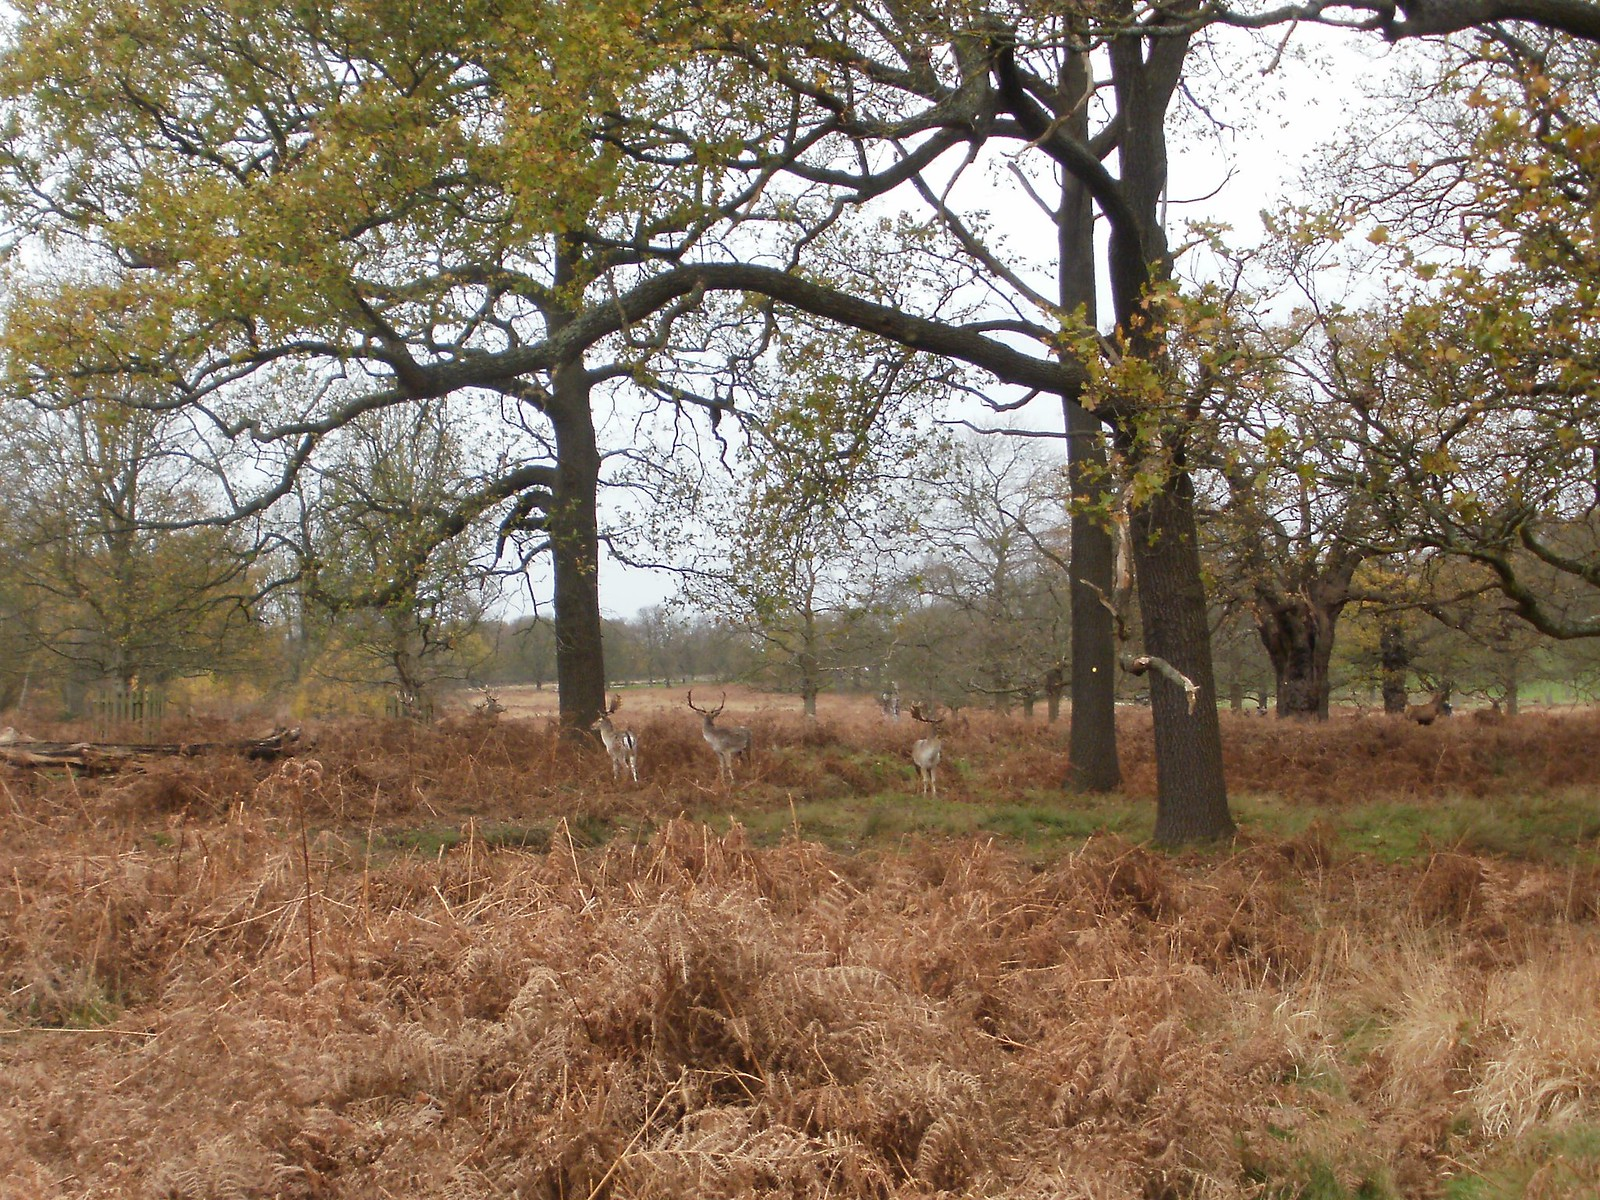 Deer in Richmond Park 3 OLYMPUS DIGITAL CAMERA